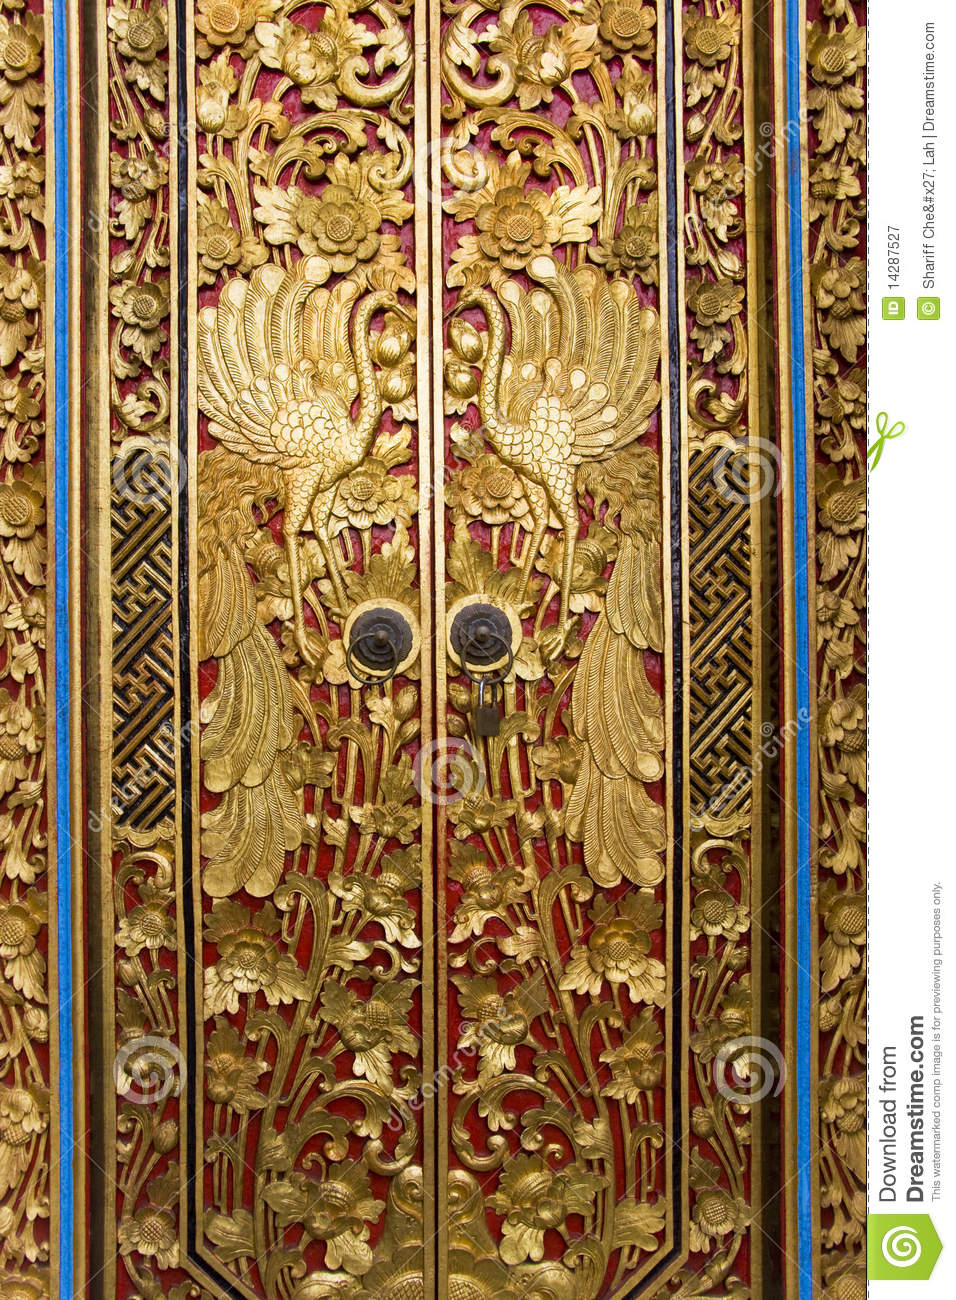 Door Carving at Pura Masceti Bali Indonesia : indonesian doors - pezcame.com